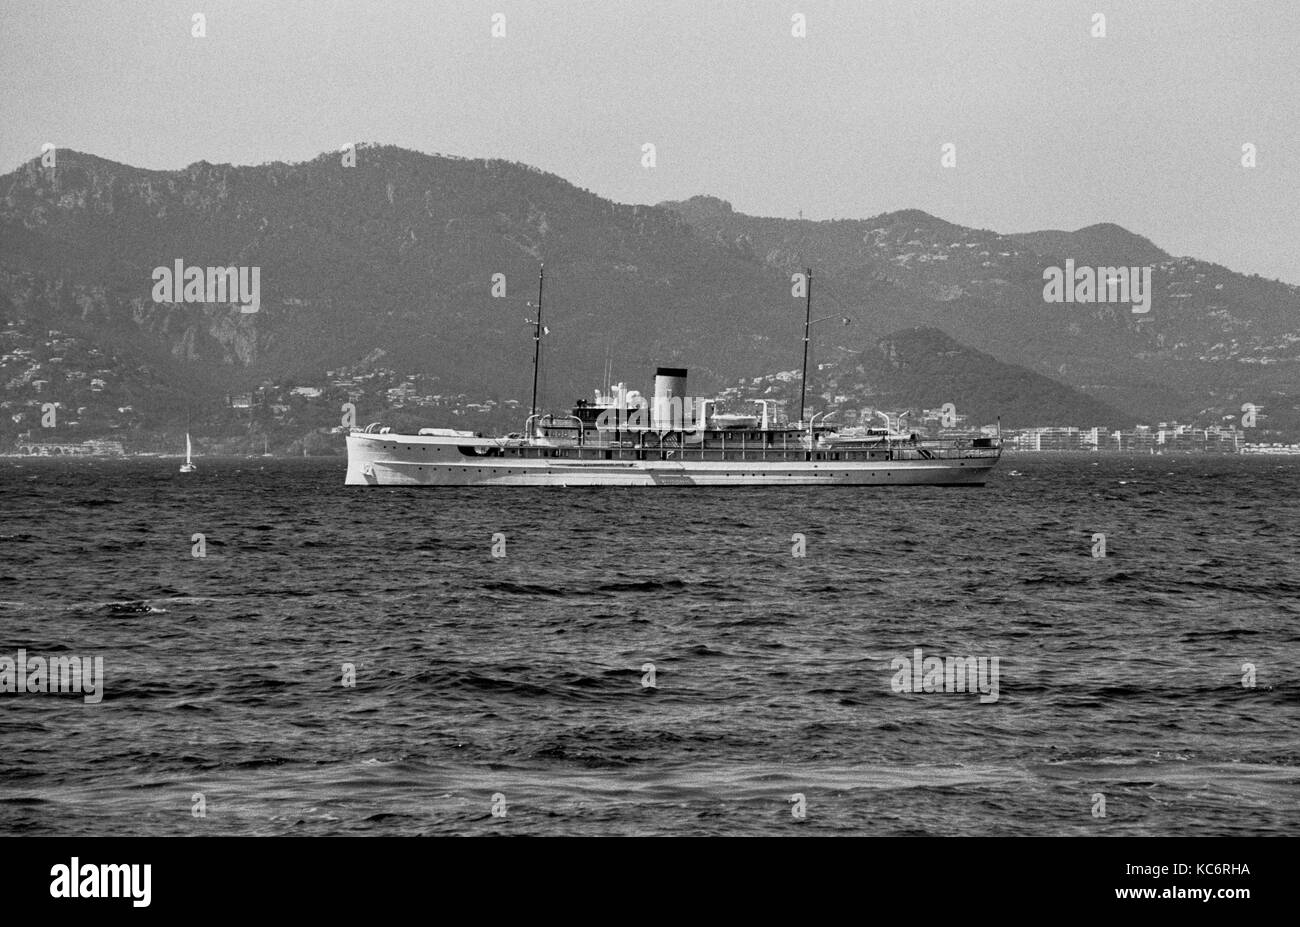 SS DELPHINE IN CANNES BAY - 1921 HORACE DODGE YACHT- LAST STEAMER YACHT- USS DAUNTLESS -CANNES FRANCE FRENCH RIVIERA - Stock Image